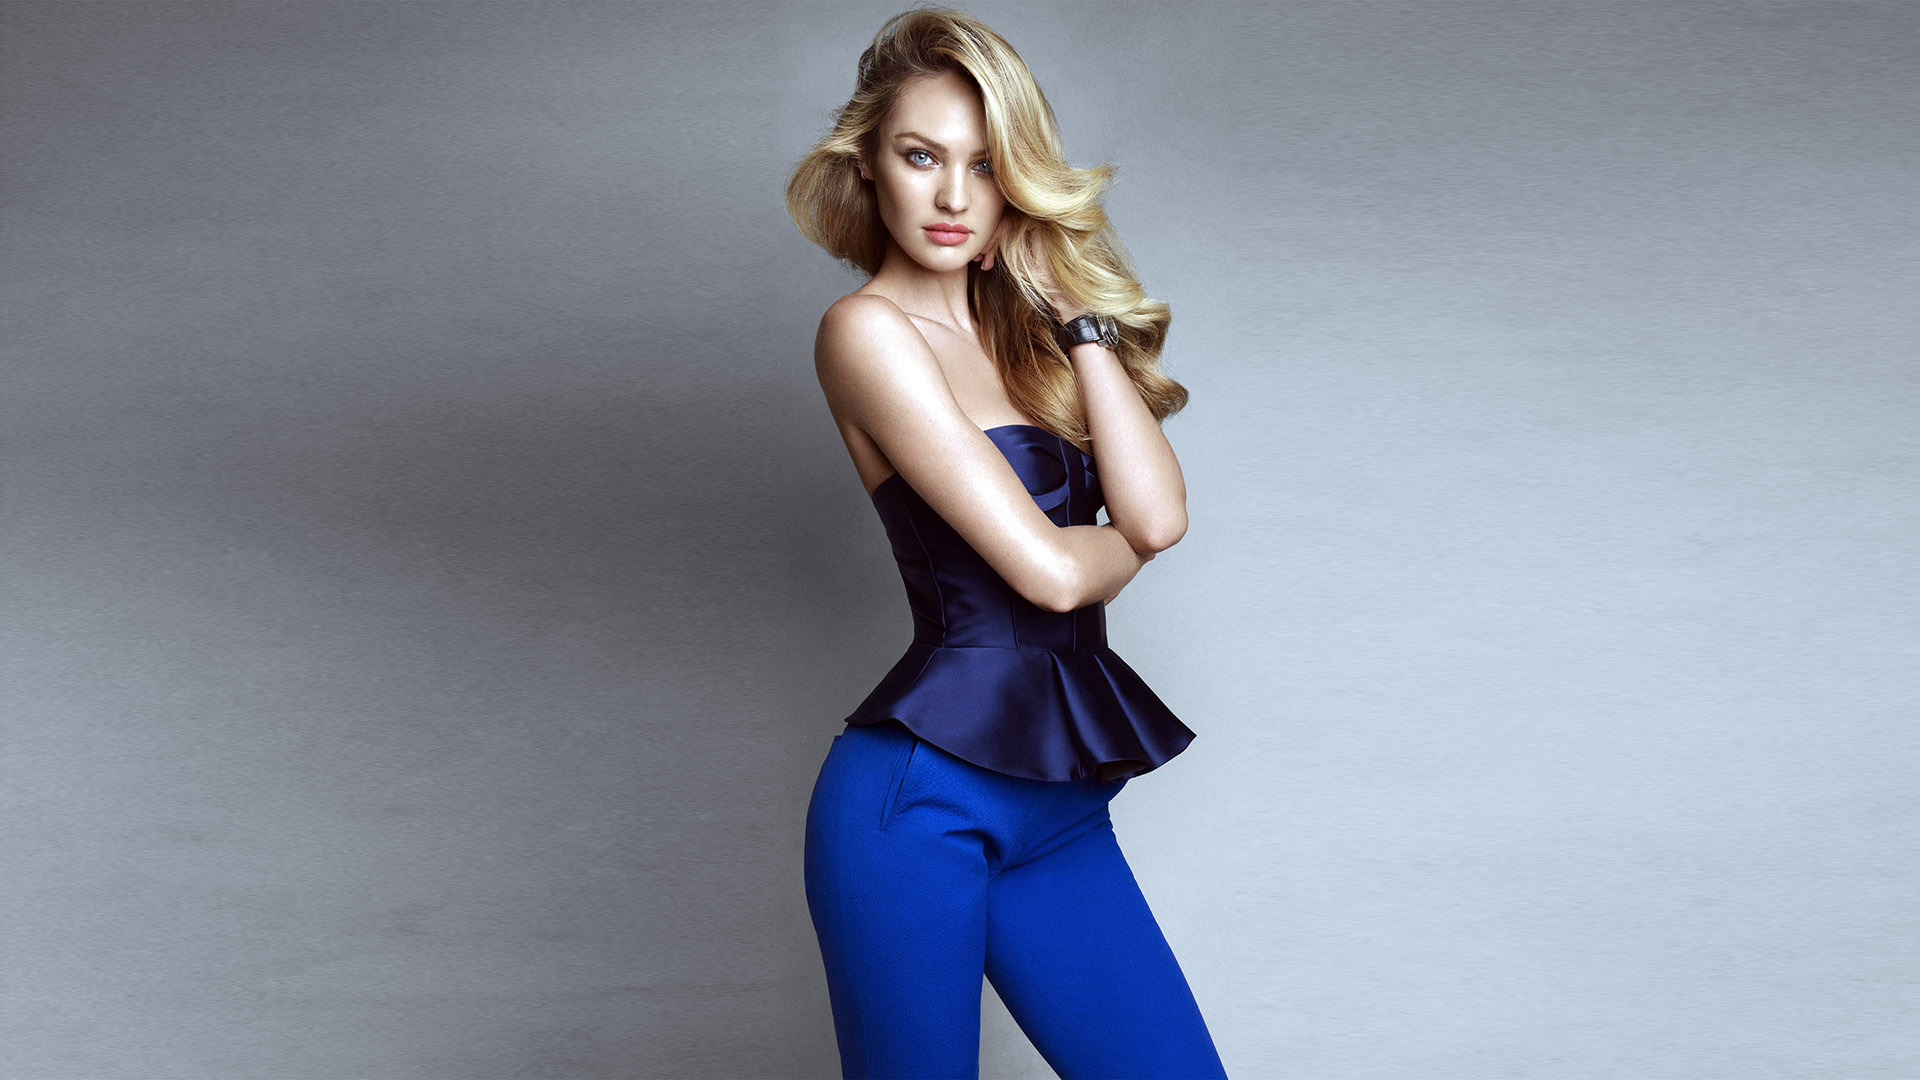 Candice Swanepoel Images